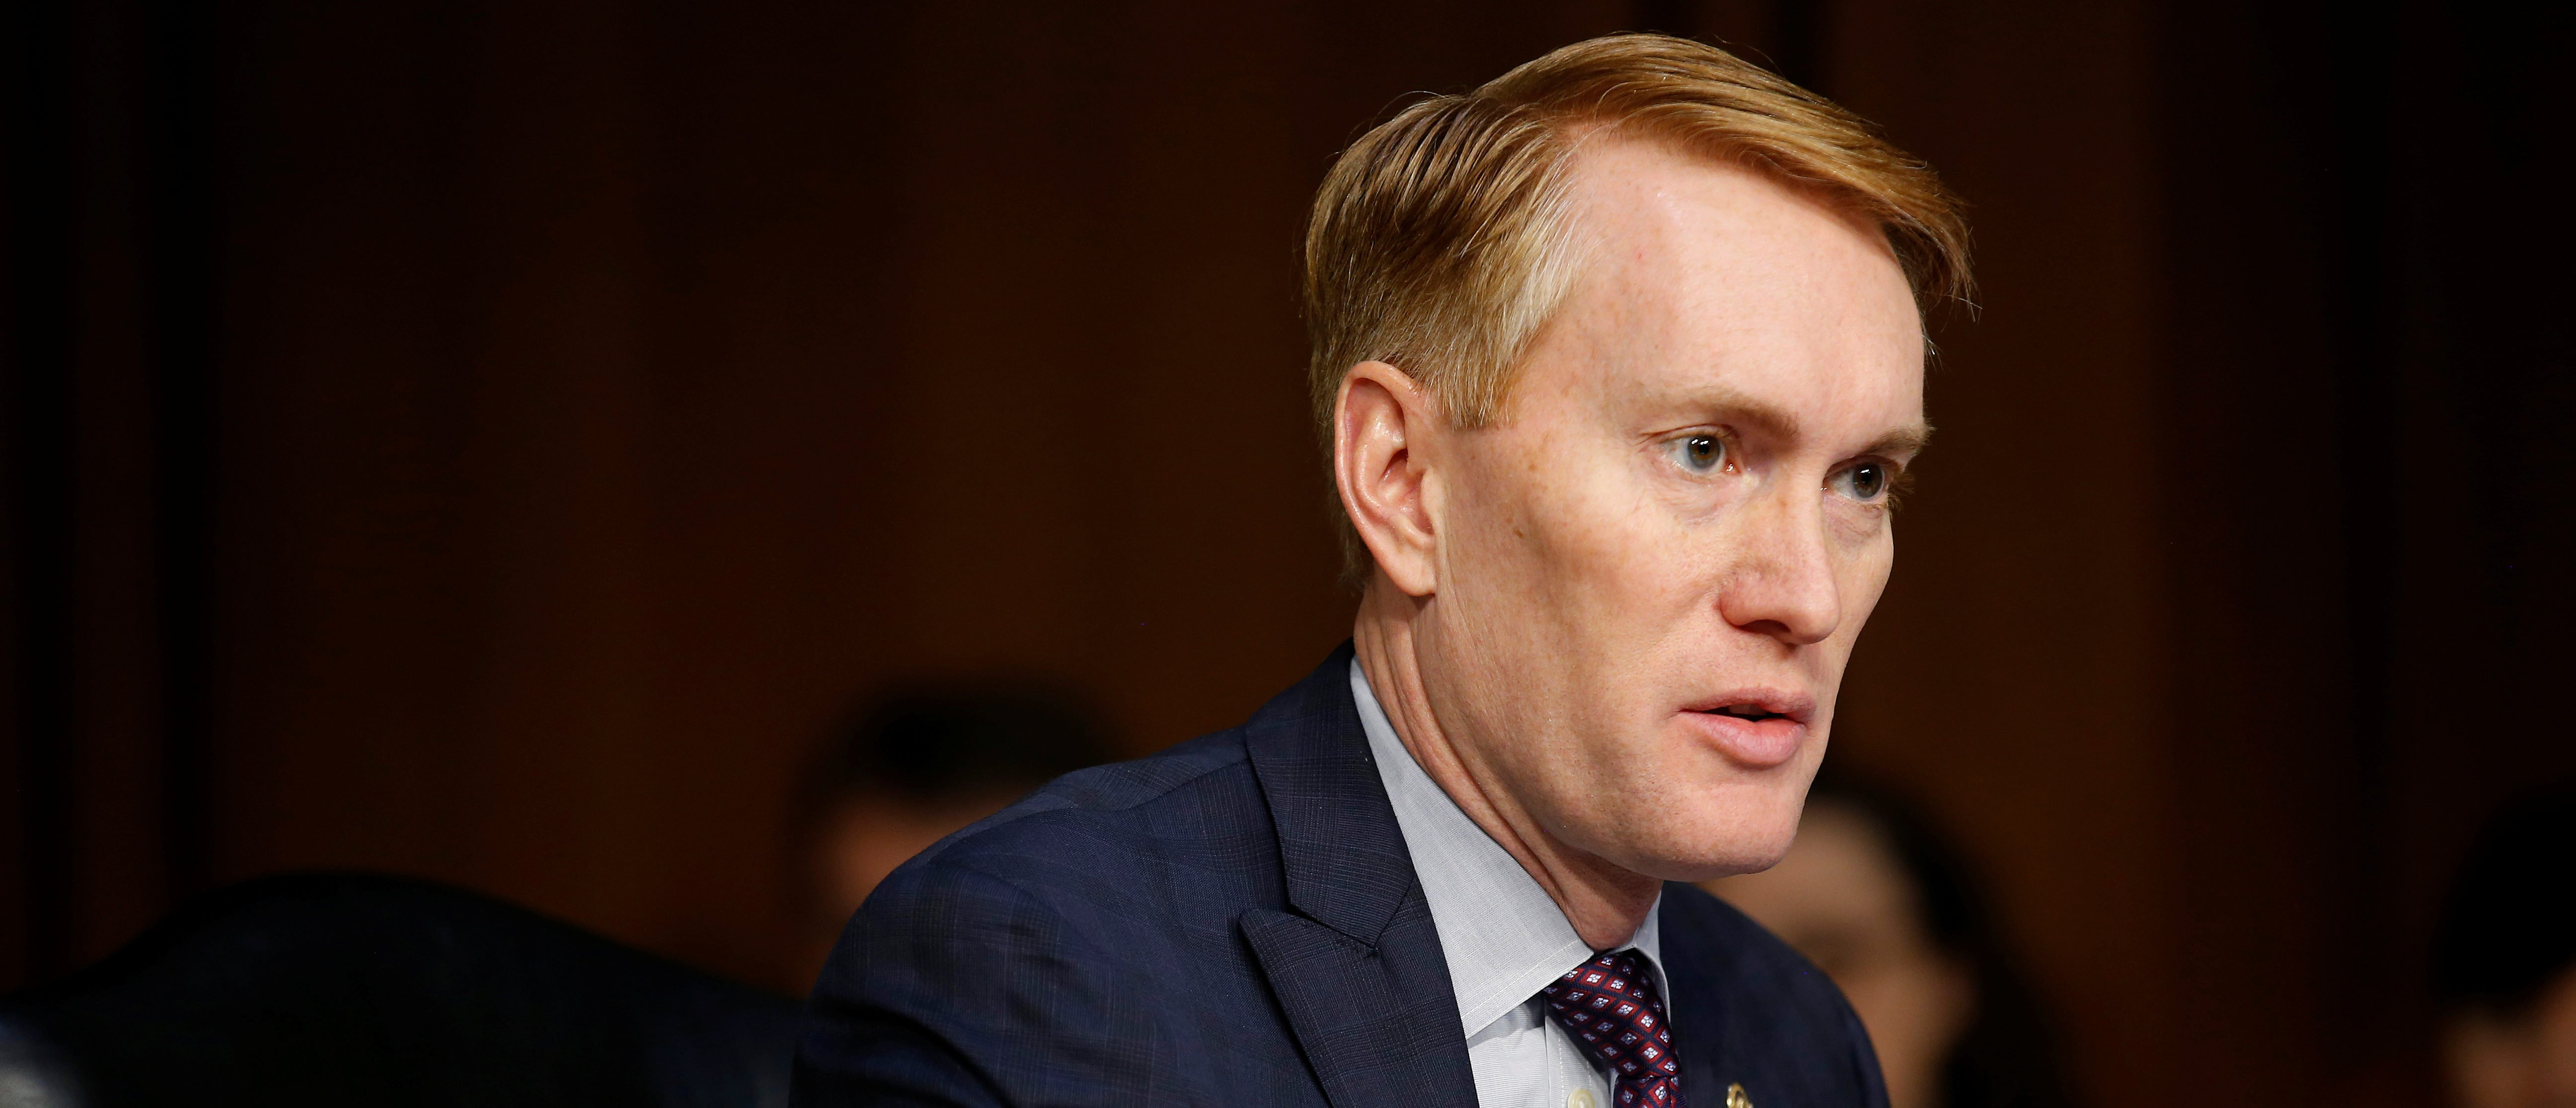 Senator James Lankford (R-OK) speaks during Senate Intelligence Committee hearing to answer questions related to Russian use of social media to influence U.S. elections, on Capitol Hill in Washington, U.S., November 1, 2017. REUTERS/Joshua Roberts